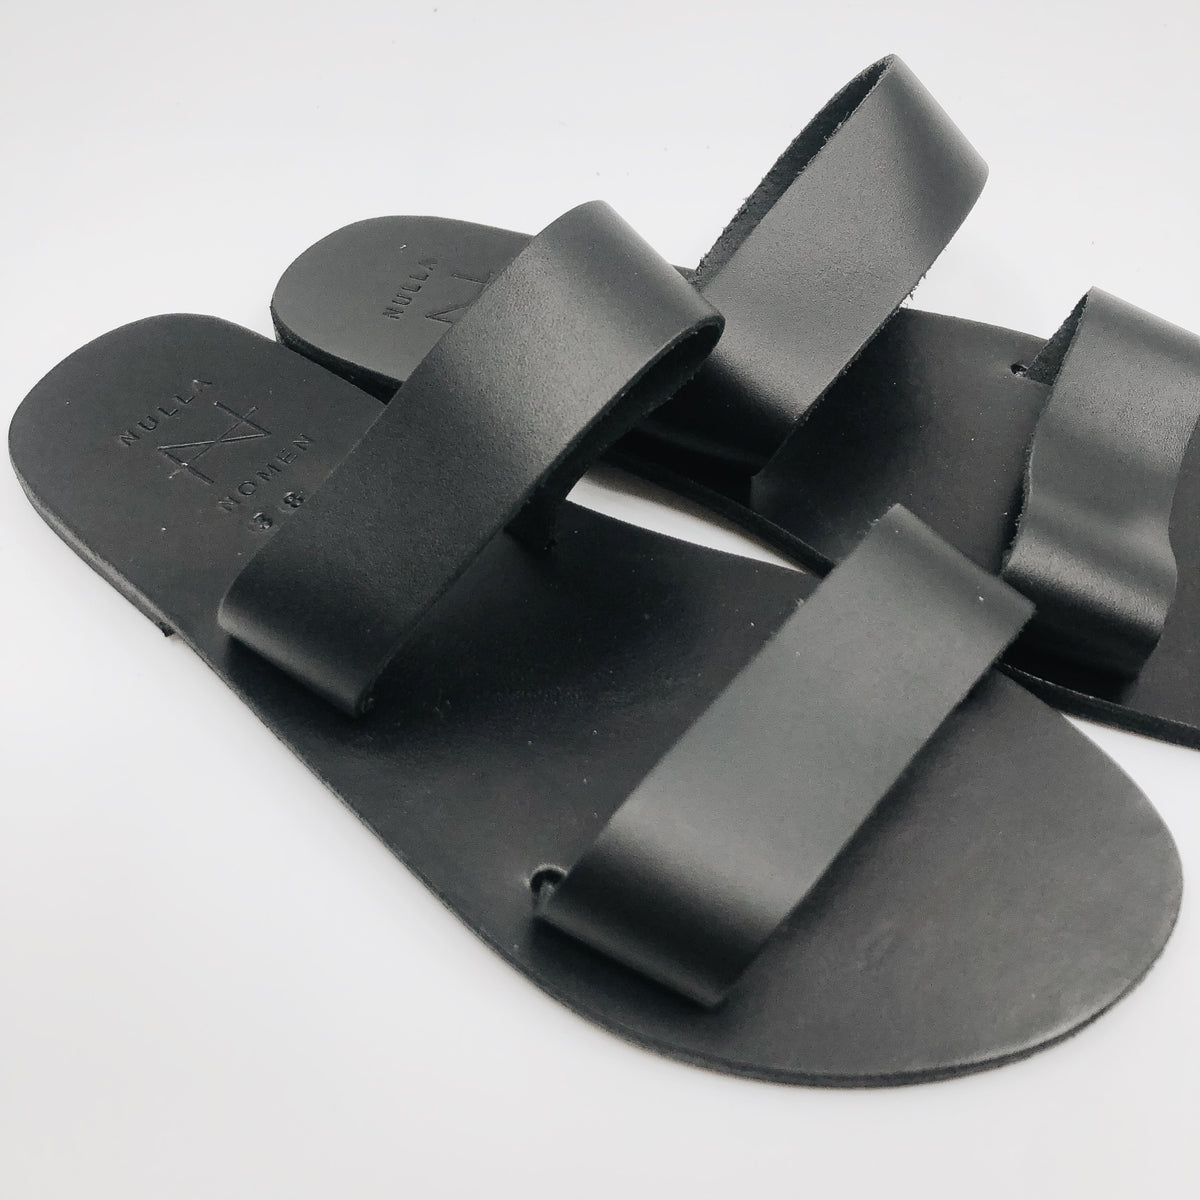 Two Strap Sandals - Black